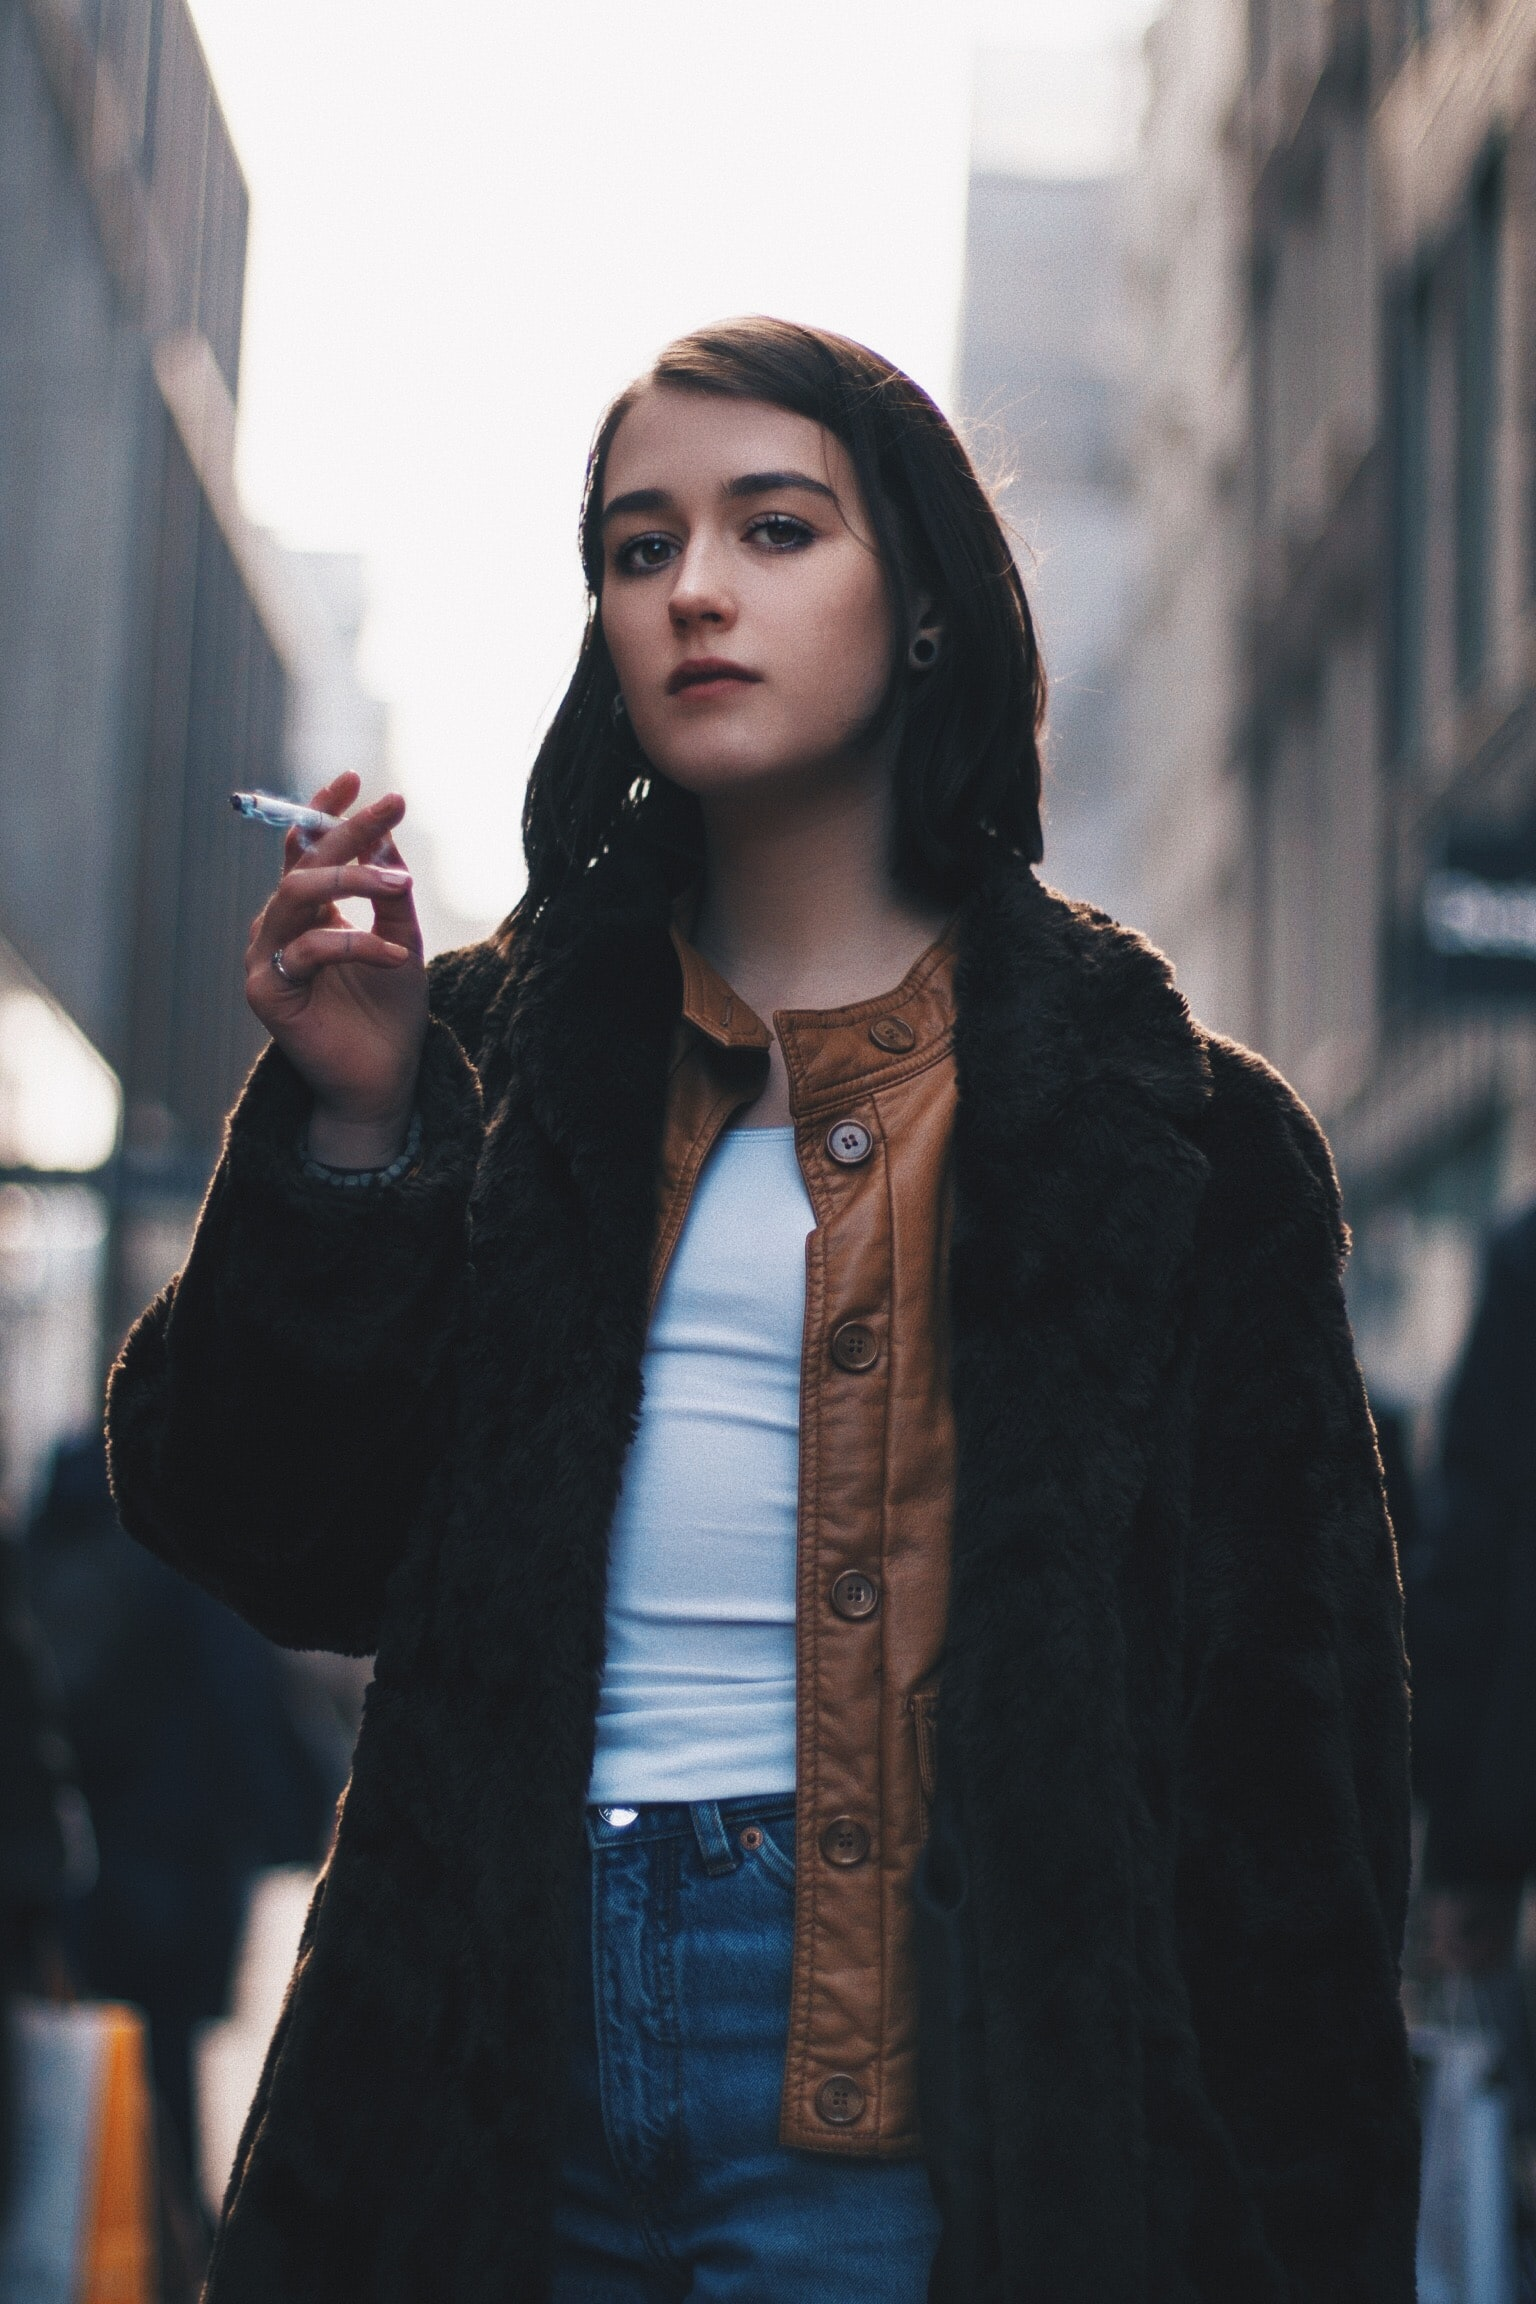 woman wearing black coat and holding cigarette stick during daytime